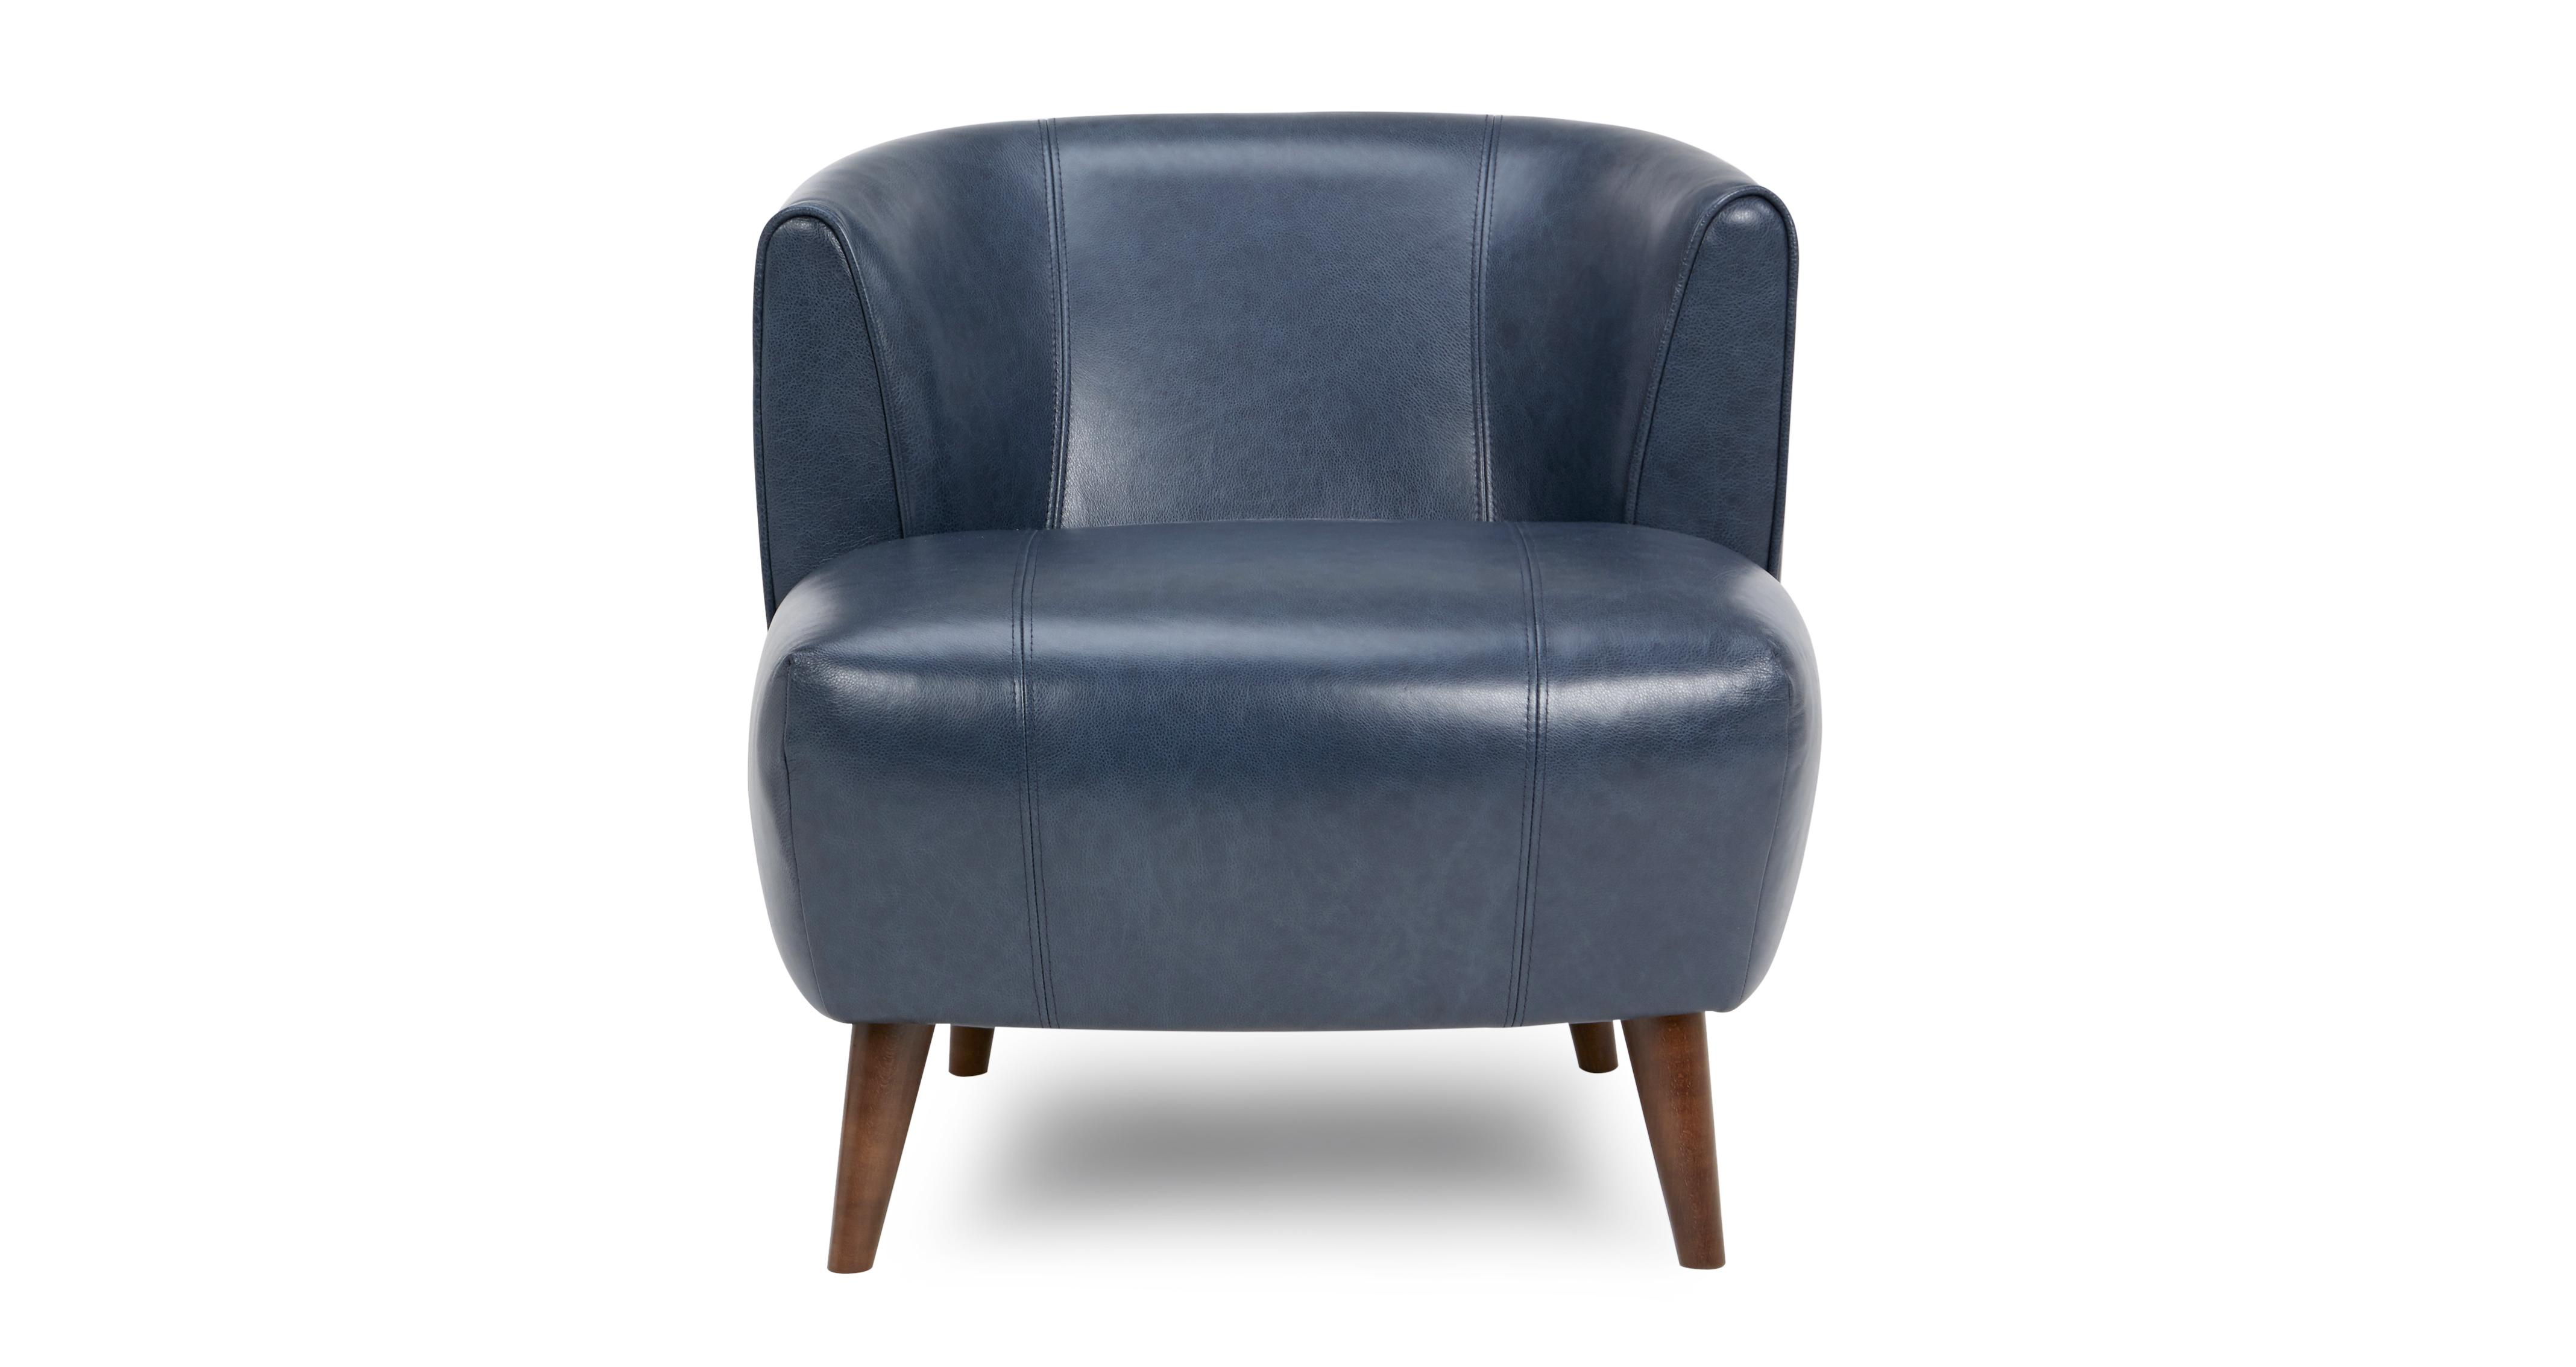 leather tub chair buy covers cheap zinc dfs ireland 36 0